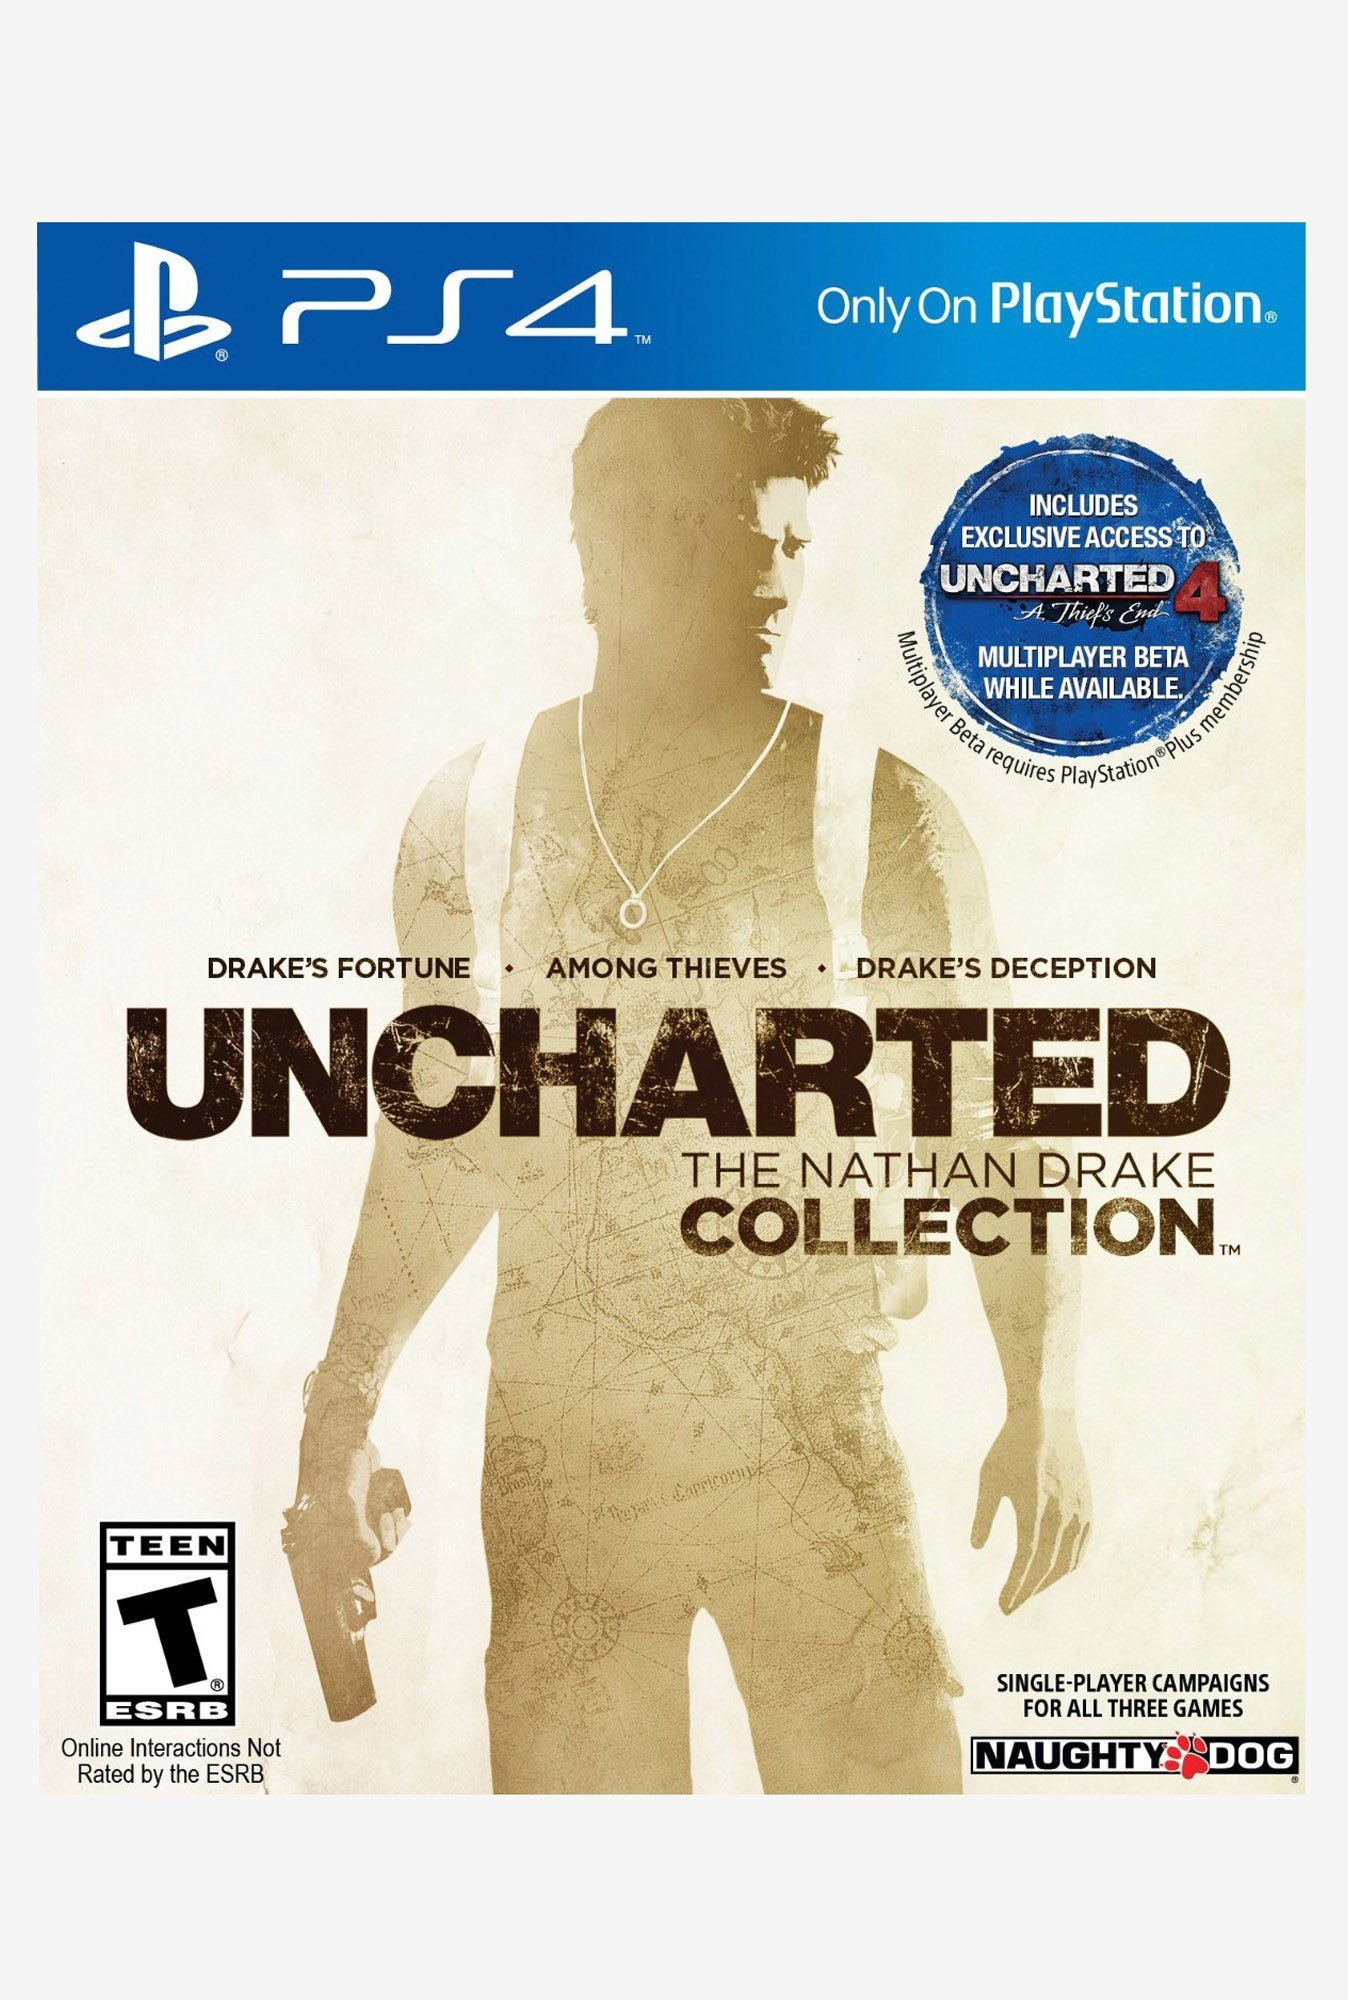 PS4 Nathan Drake Collection Uncharted